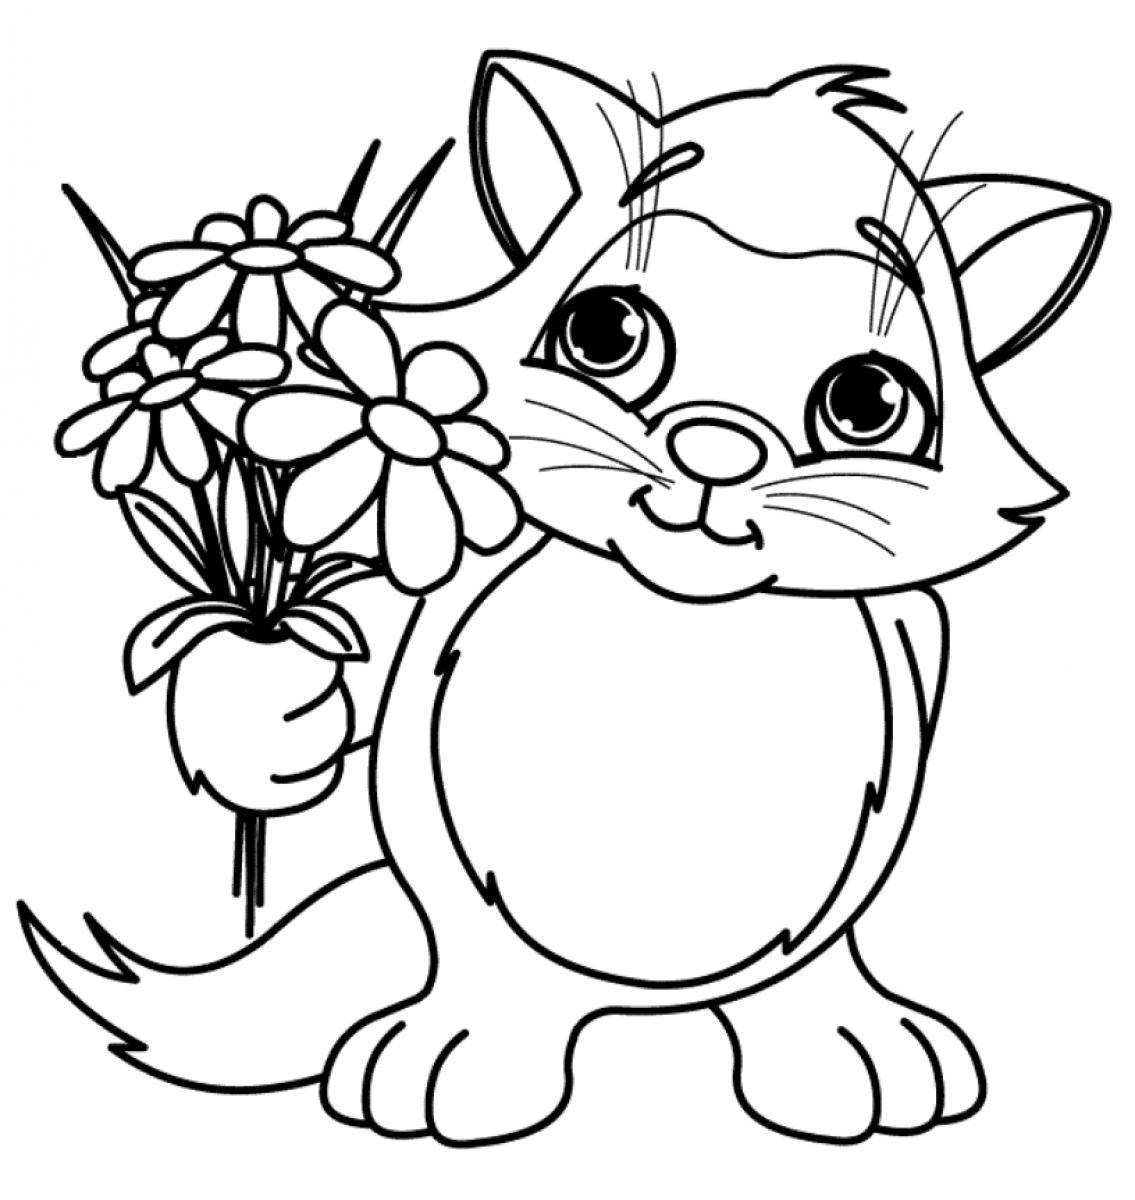 colouring flowers 10 cool coloring pages free premium templates flowers colouring